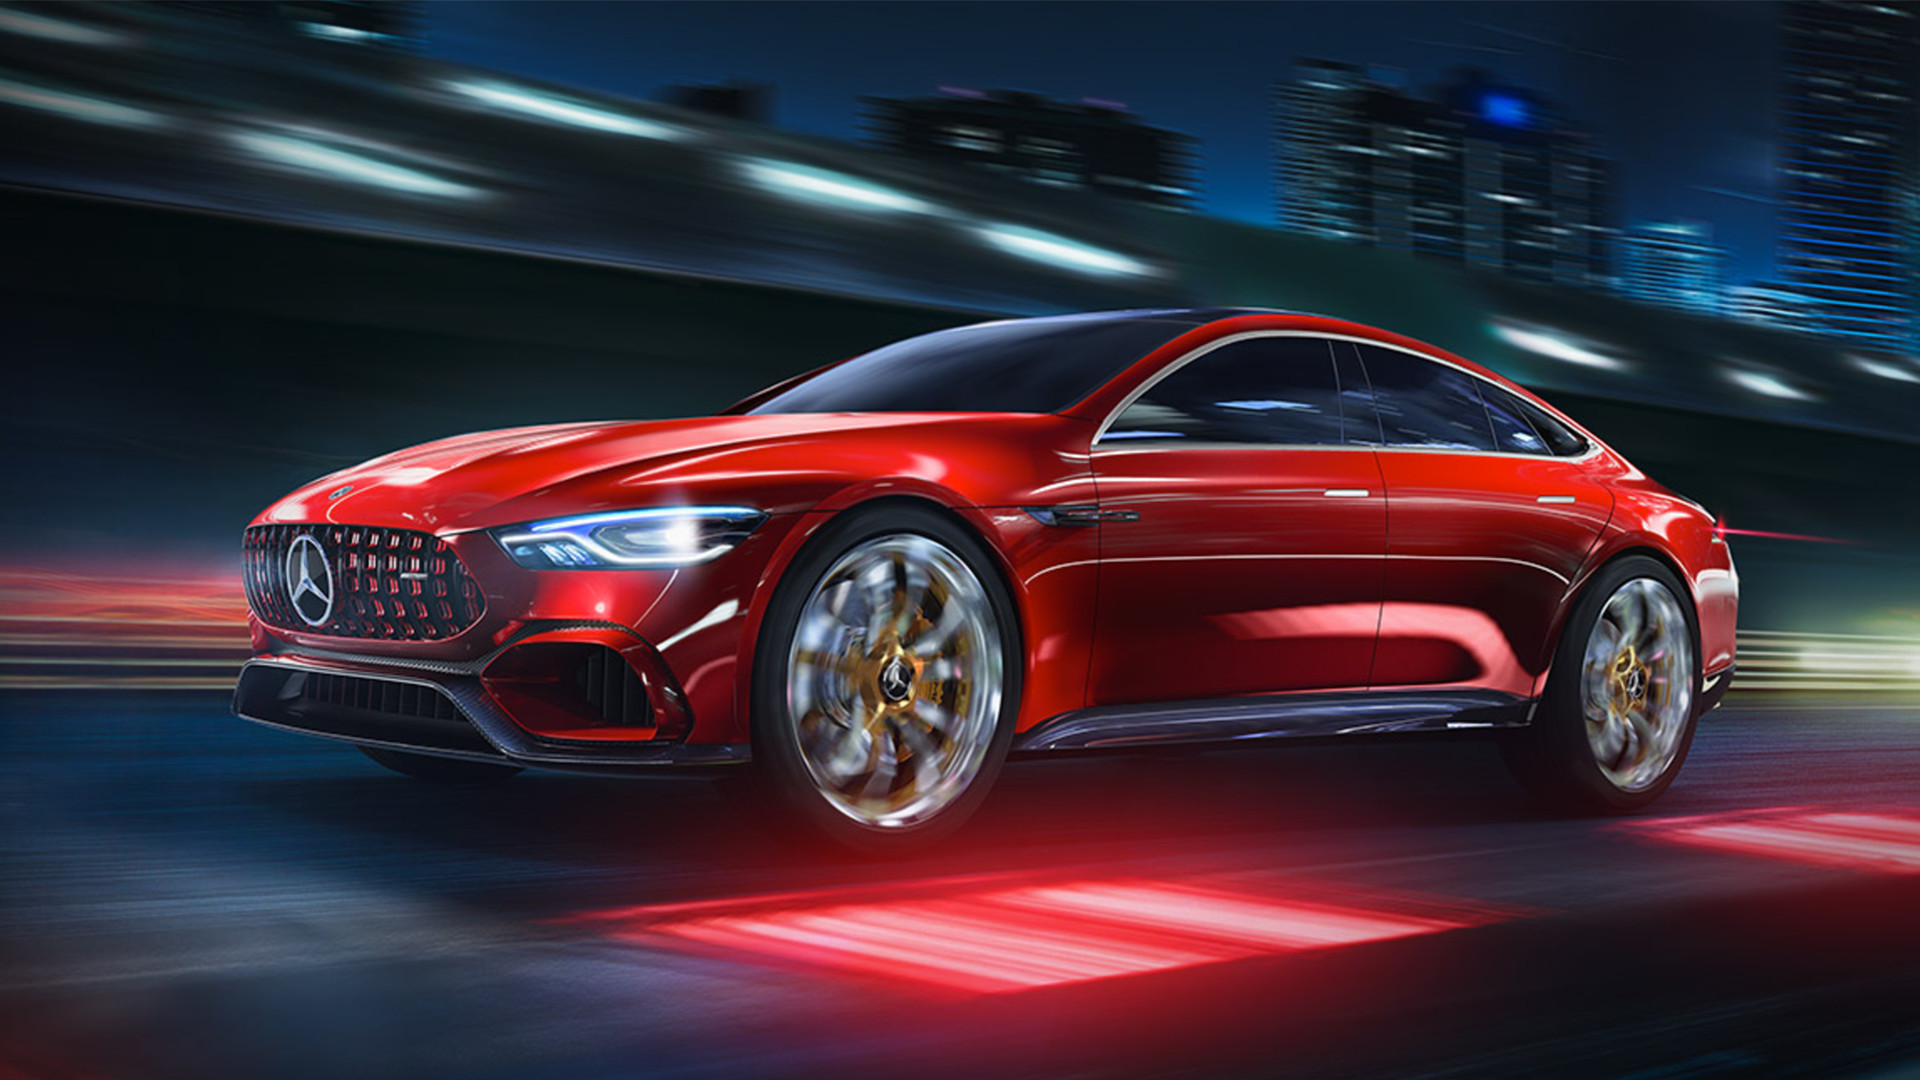 The Mercedes Amg Gt Concept With Eq